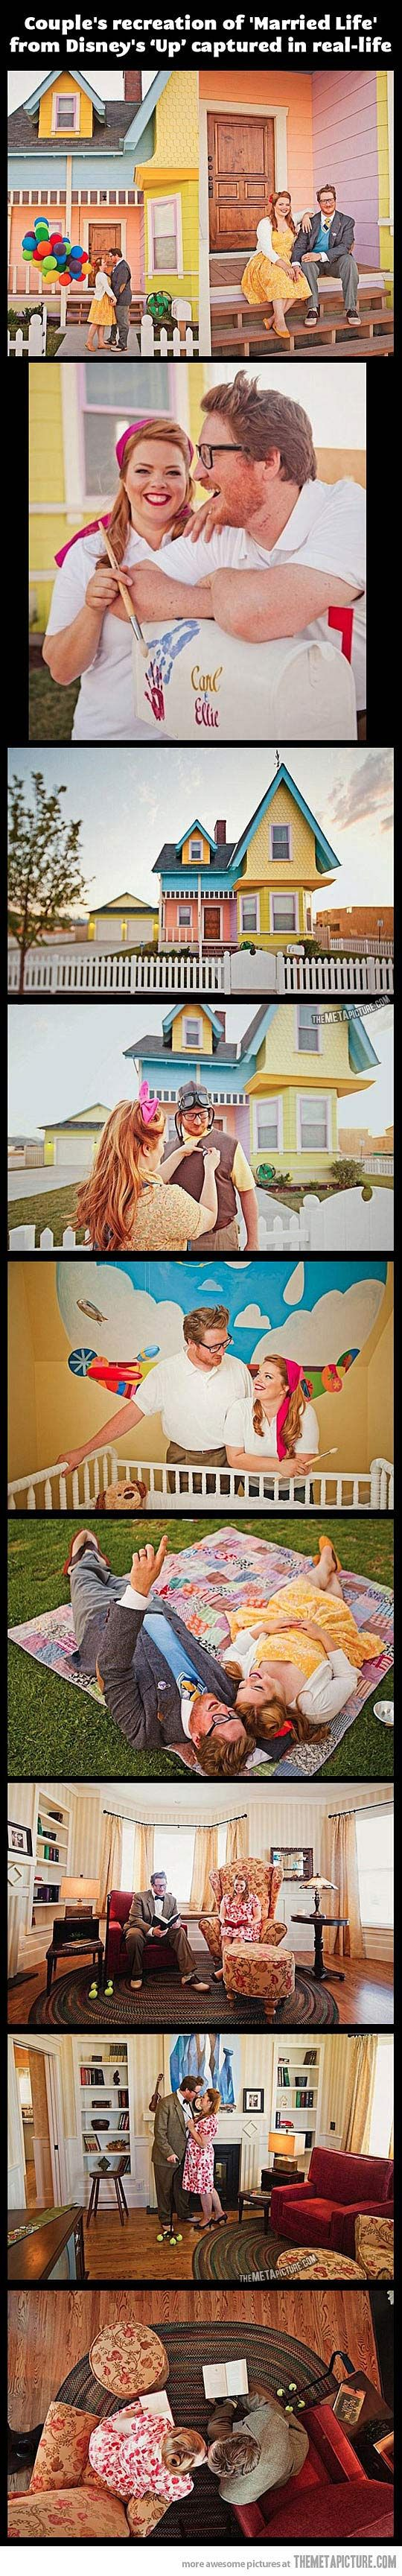 'Up' in real life…seriously, how cute is that?